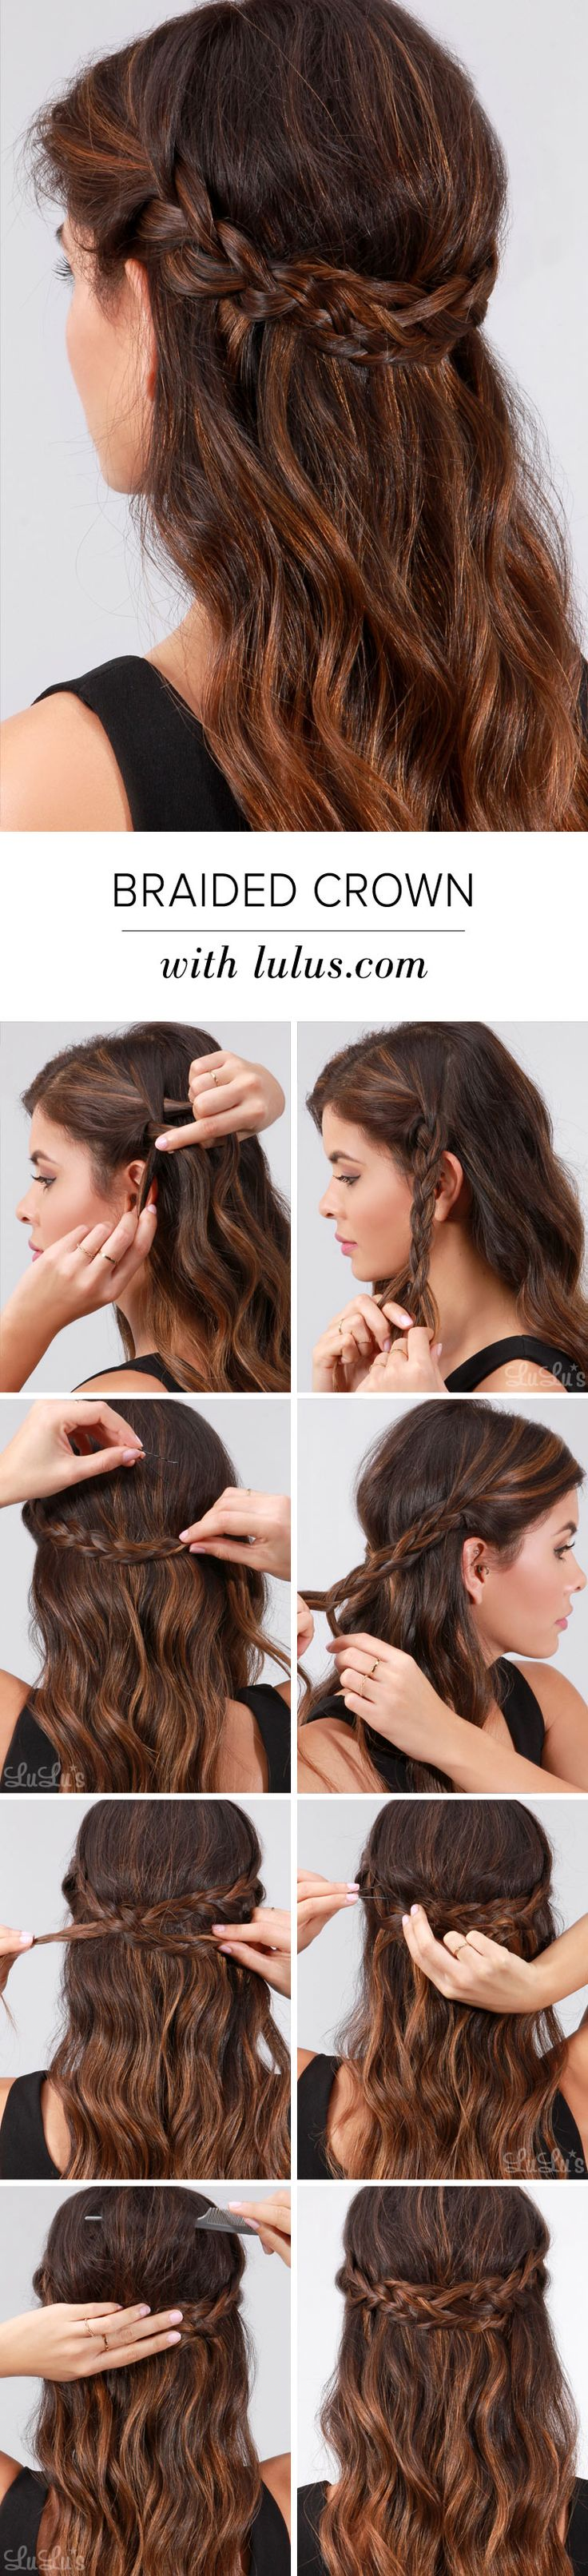 Beautiful Braided Crown #hairstyle #braid #crown